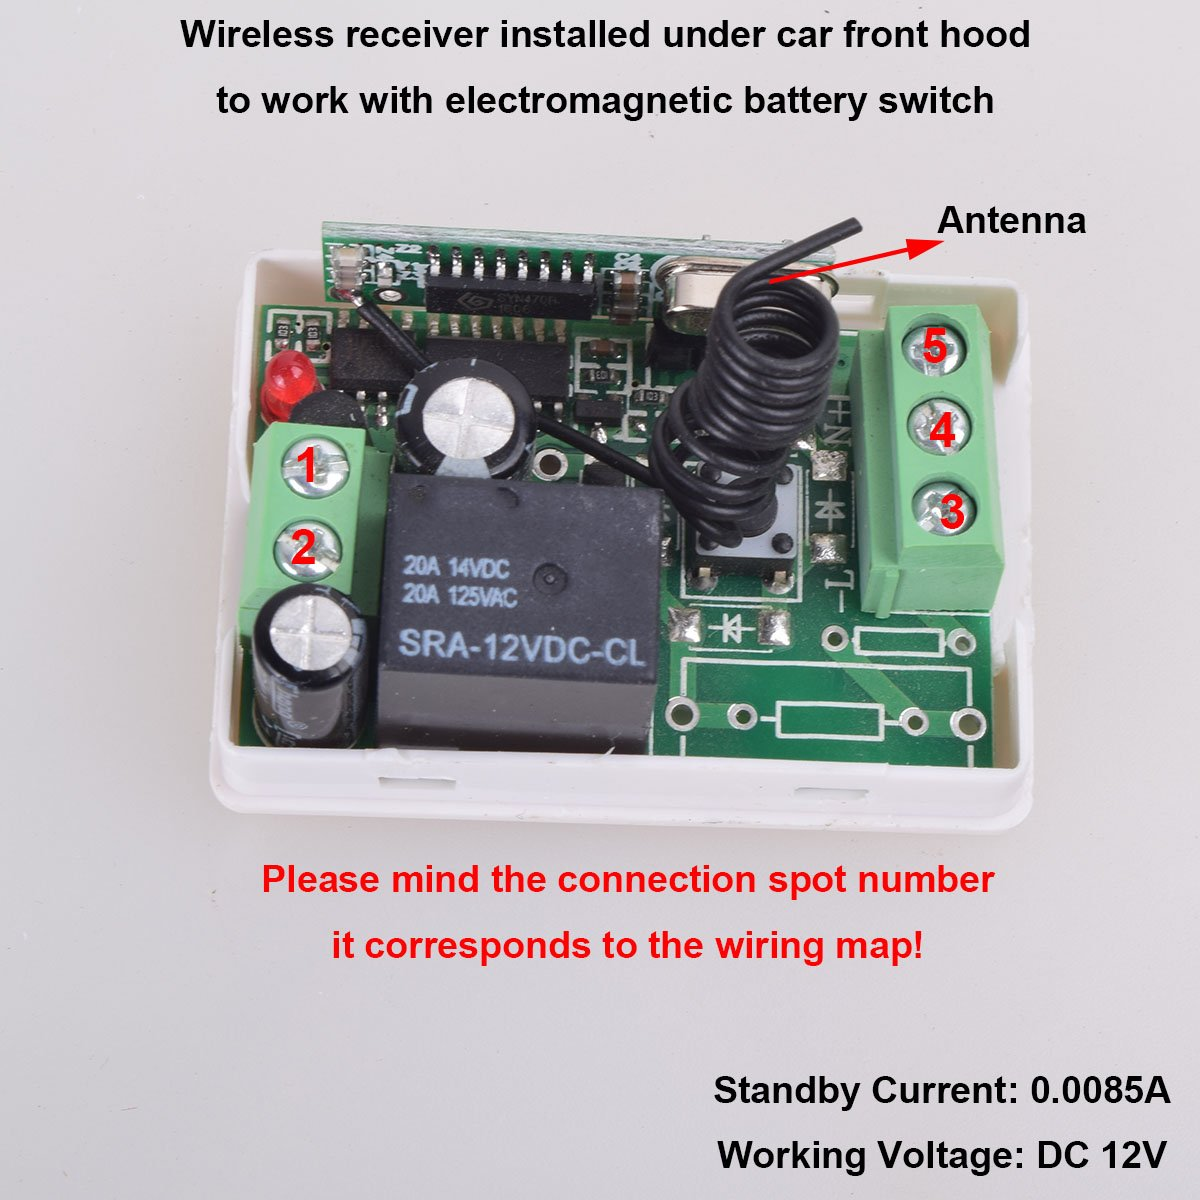 Car Wireless Remote Control Battery Switch Disconnect Latching Relay. Car Wireless Remote Control Battery Switch Disconnect Latching Relay Antitheft Ekylin Dc 12v Electromagic Solenoid Valve Terminal Master Kill System. Wiring. Battery Doctor Disconnect Wiring Diagram At Scoala.co